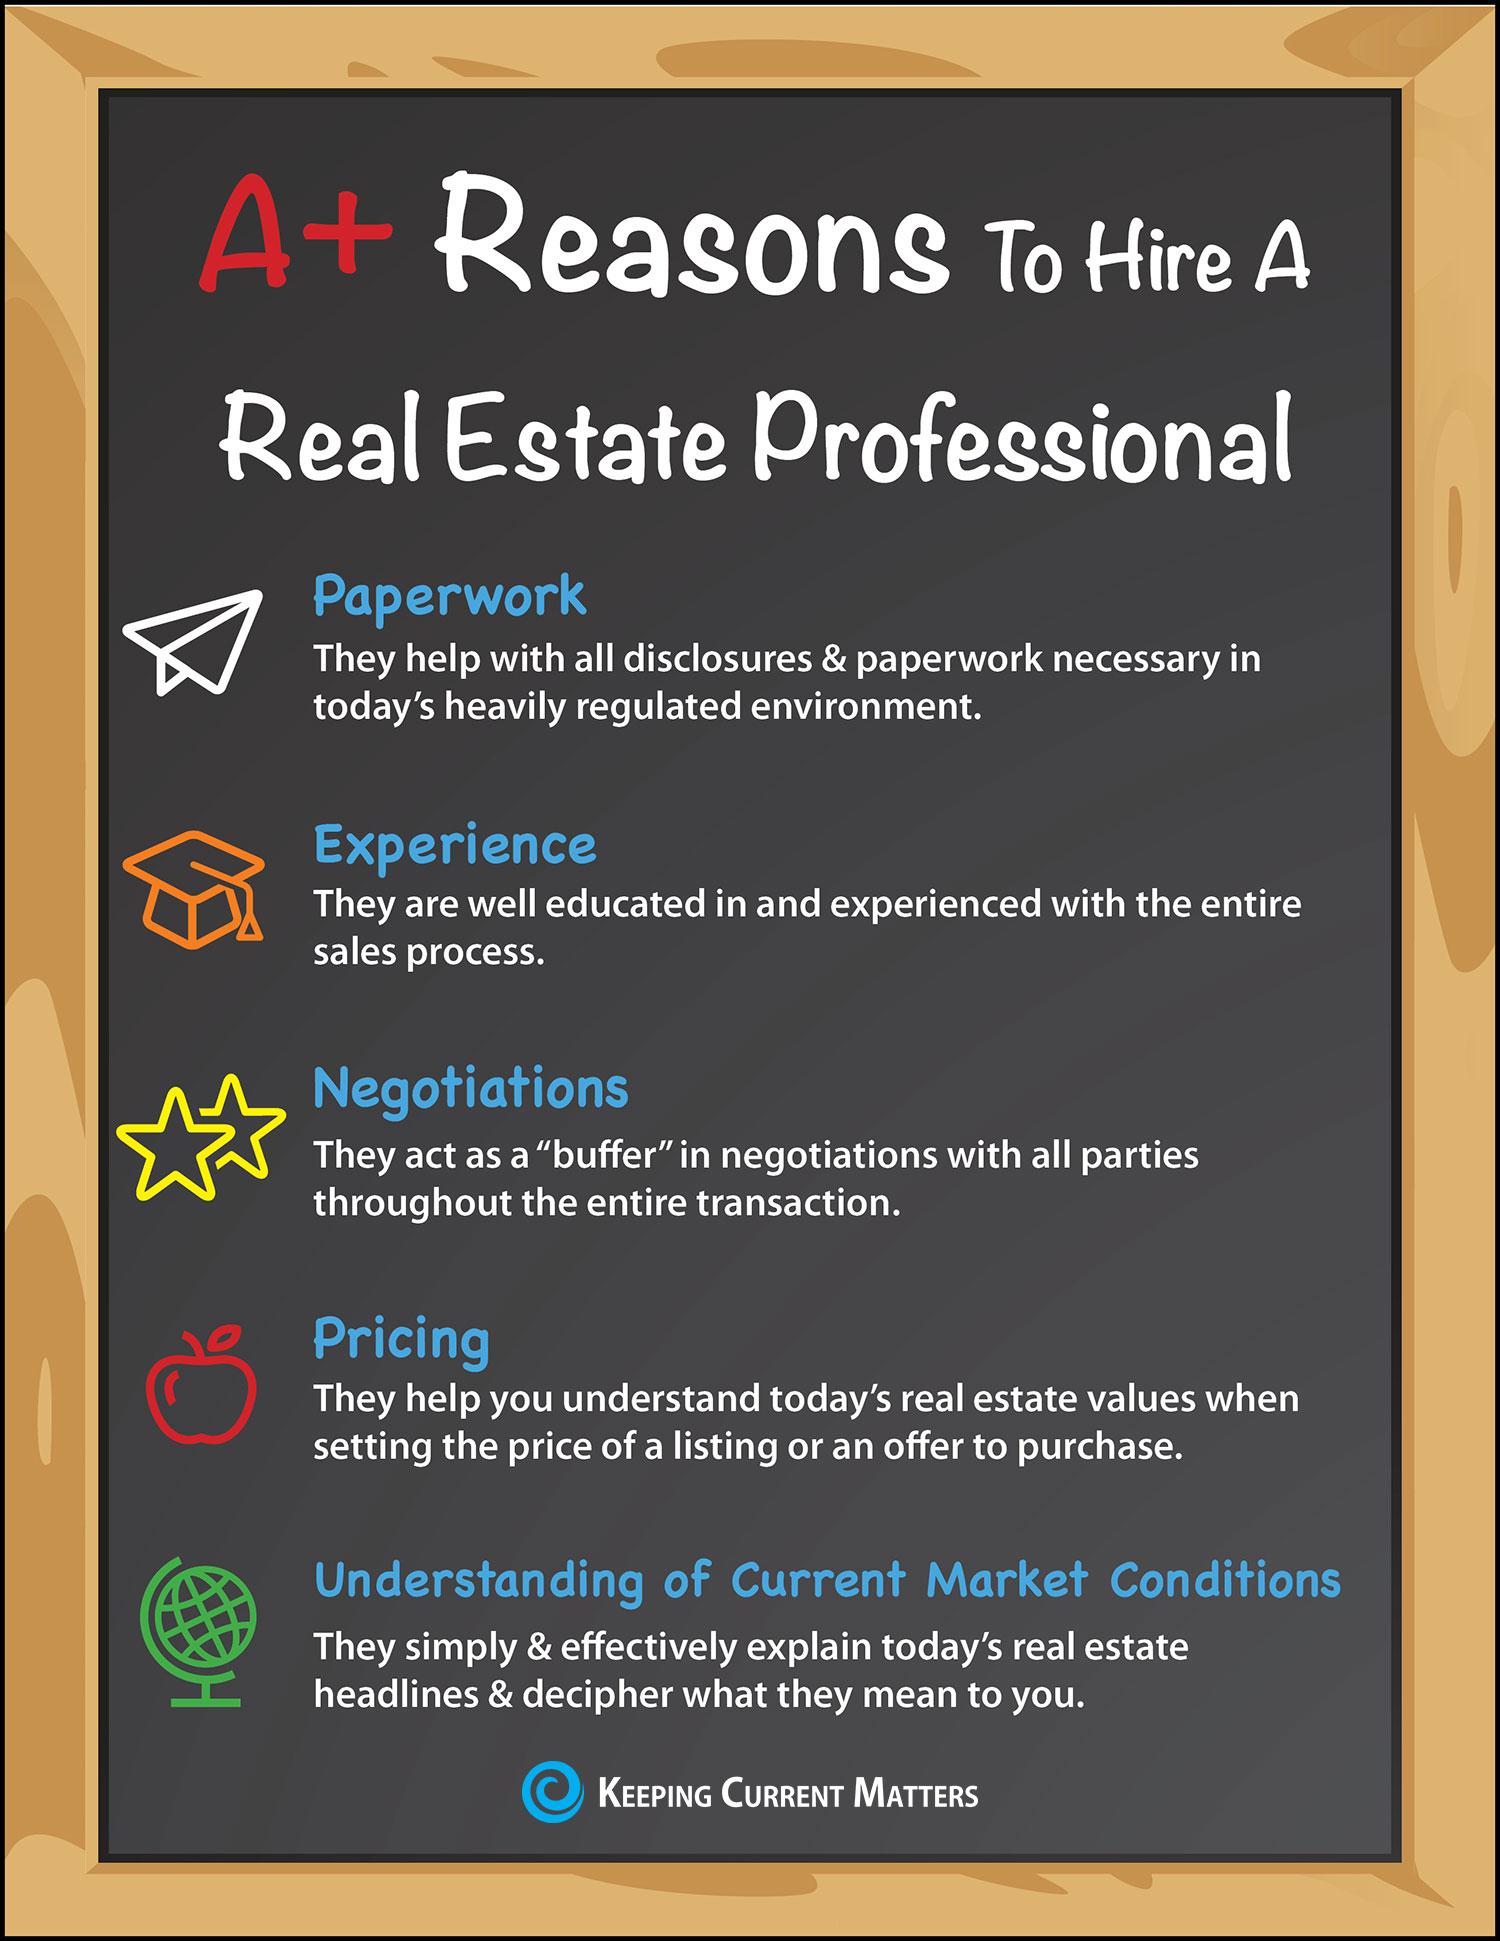 Top 5 A+ Reasons to Hire a Real Estate Pro [INFOGRAPHIC] | Keeping Current Matters